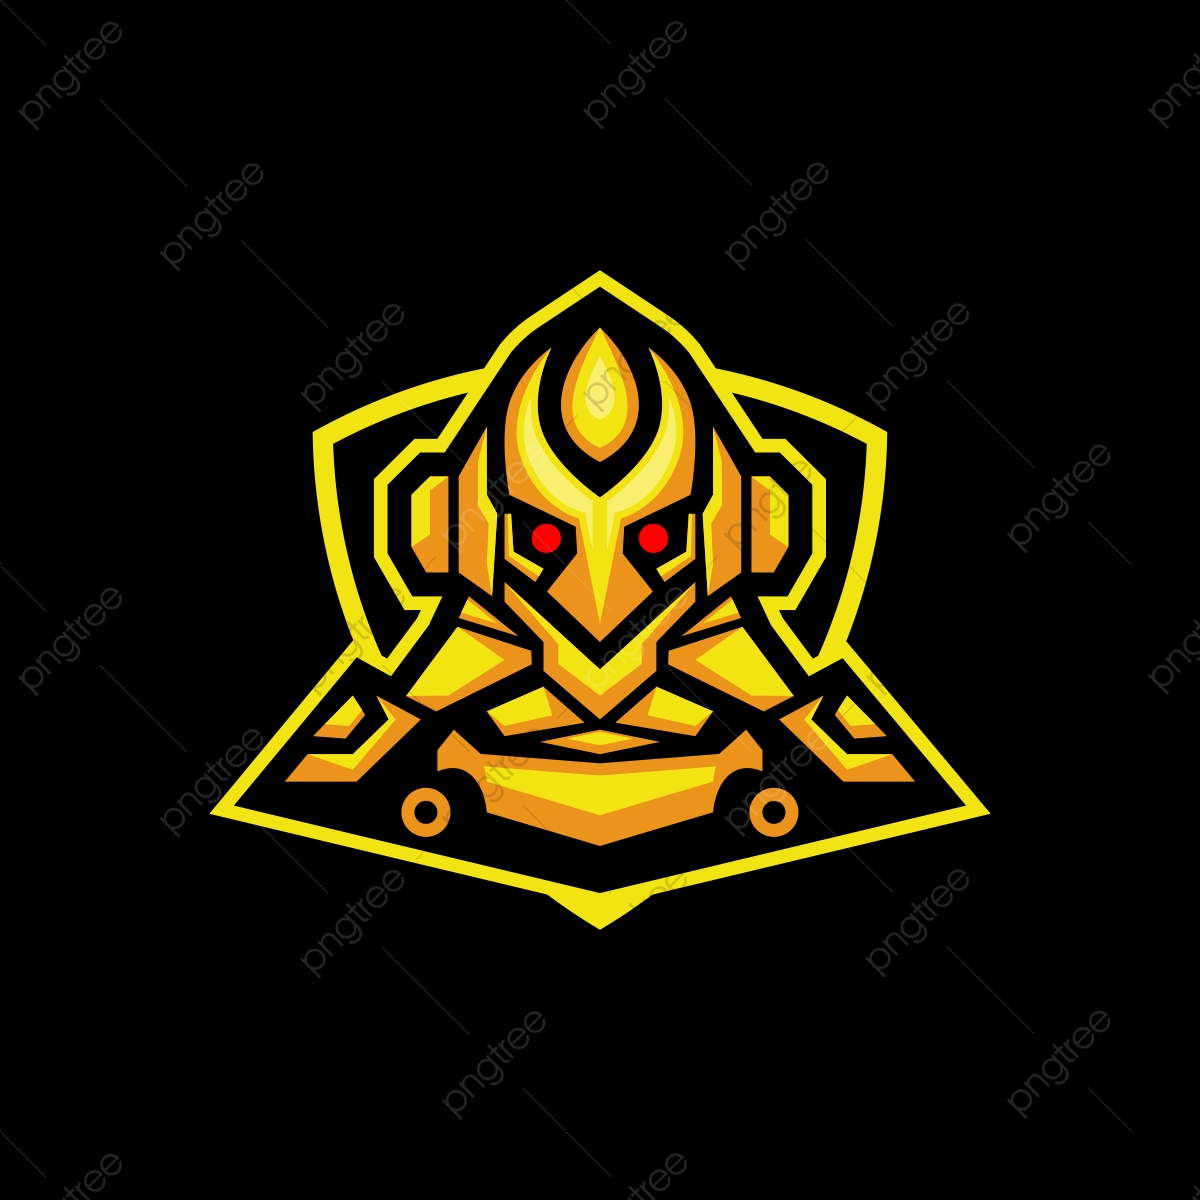 clip royalty free download Vector crest futuristic. Yellow cyborg esport gaming